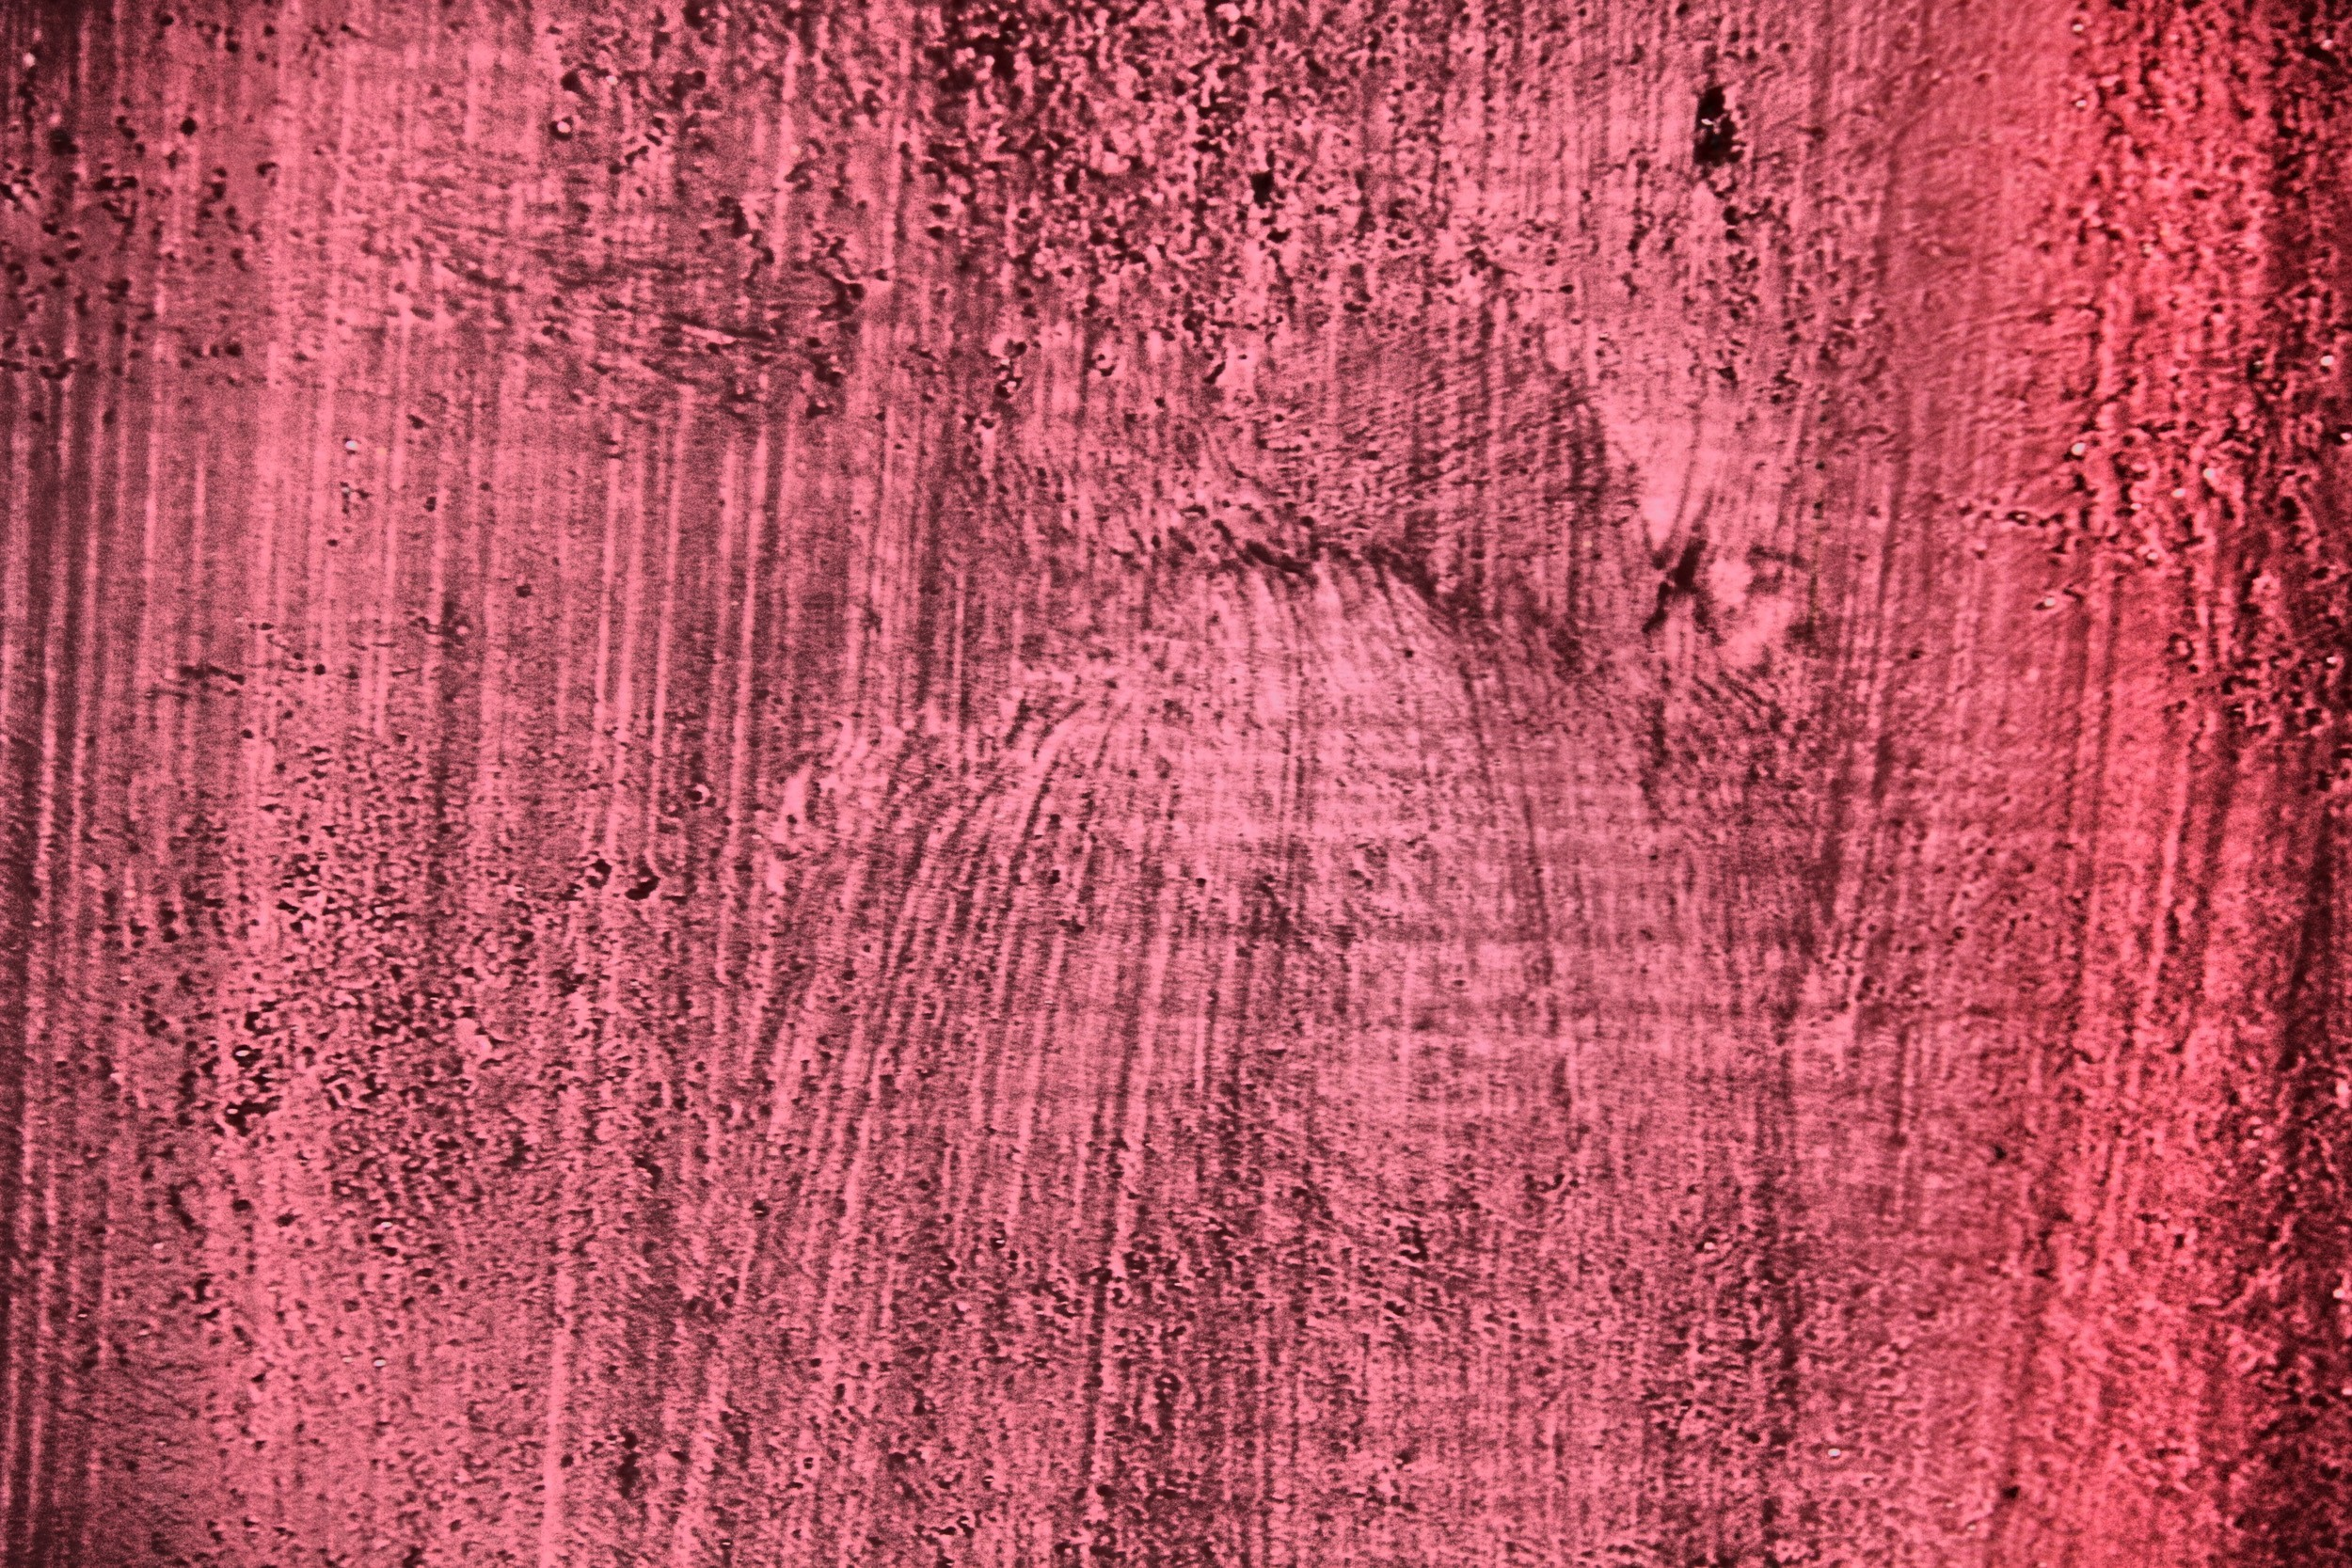 Red Grunge Background 1280x720: Red Grunge Background ·① Download Free Amazing Wallpapers